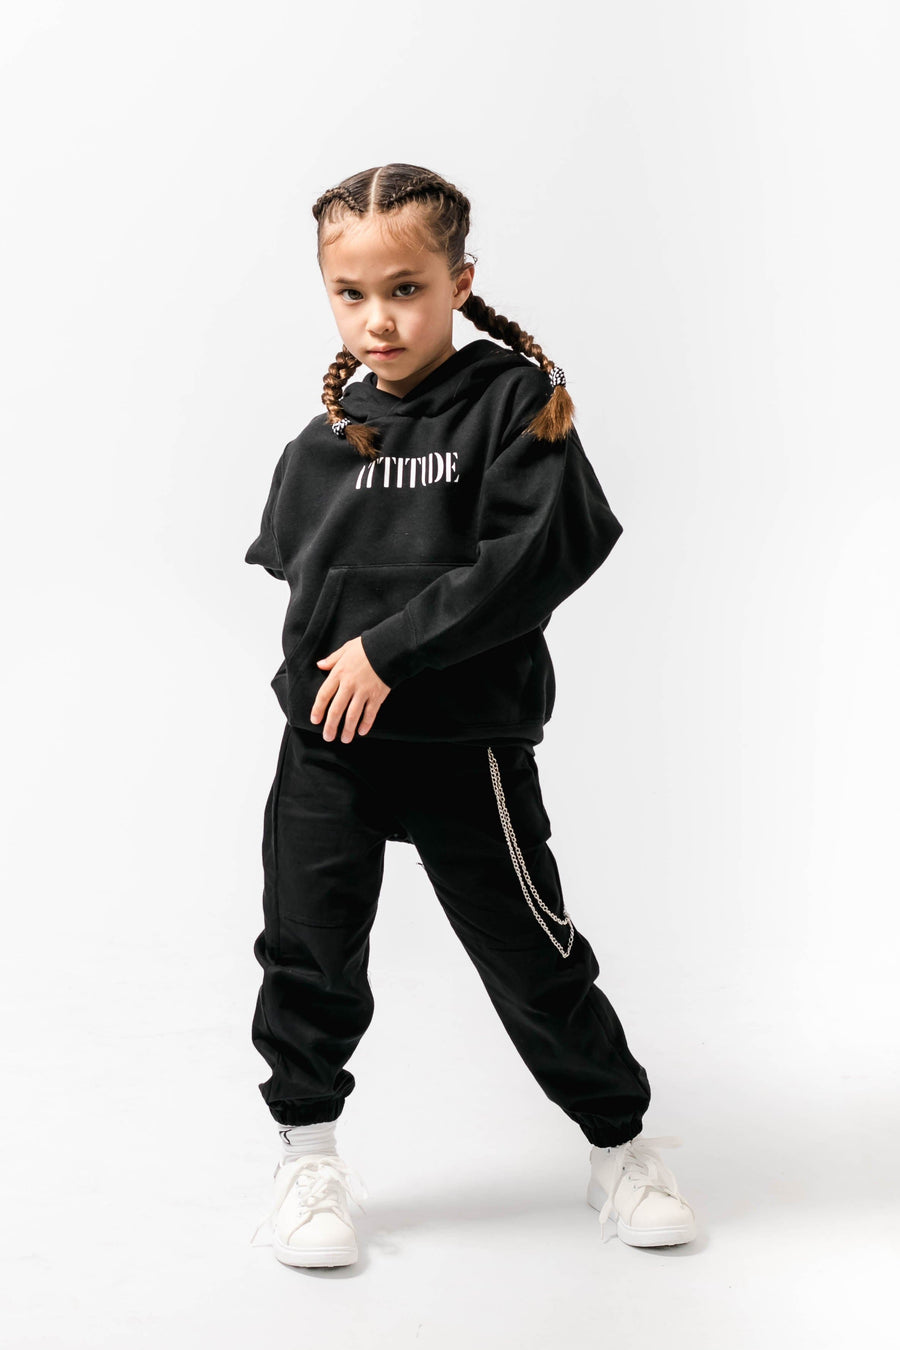 Attitude Loose fit Hoody Black Little Attitude